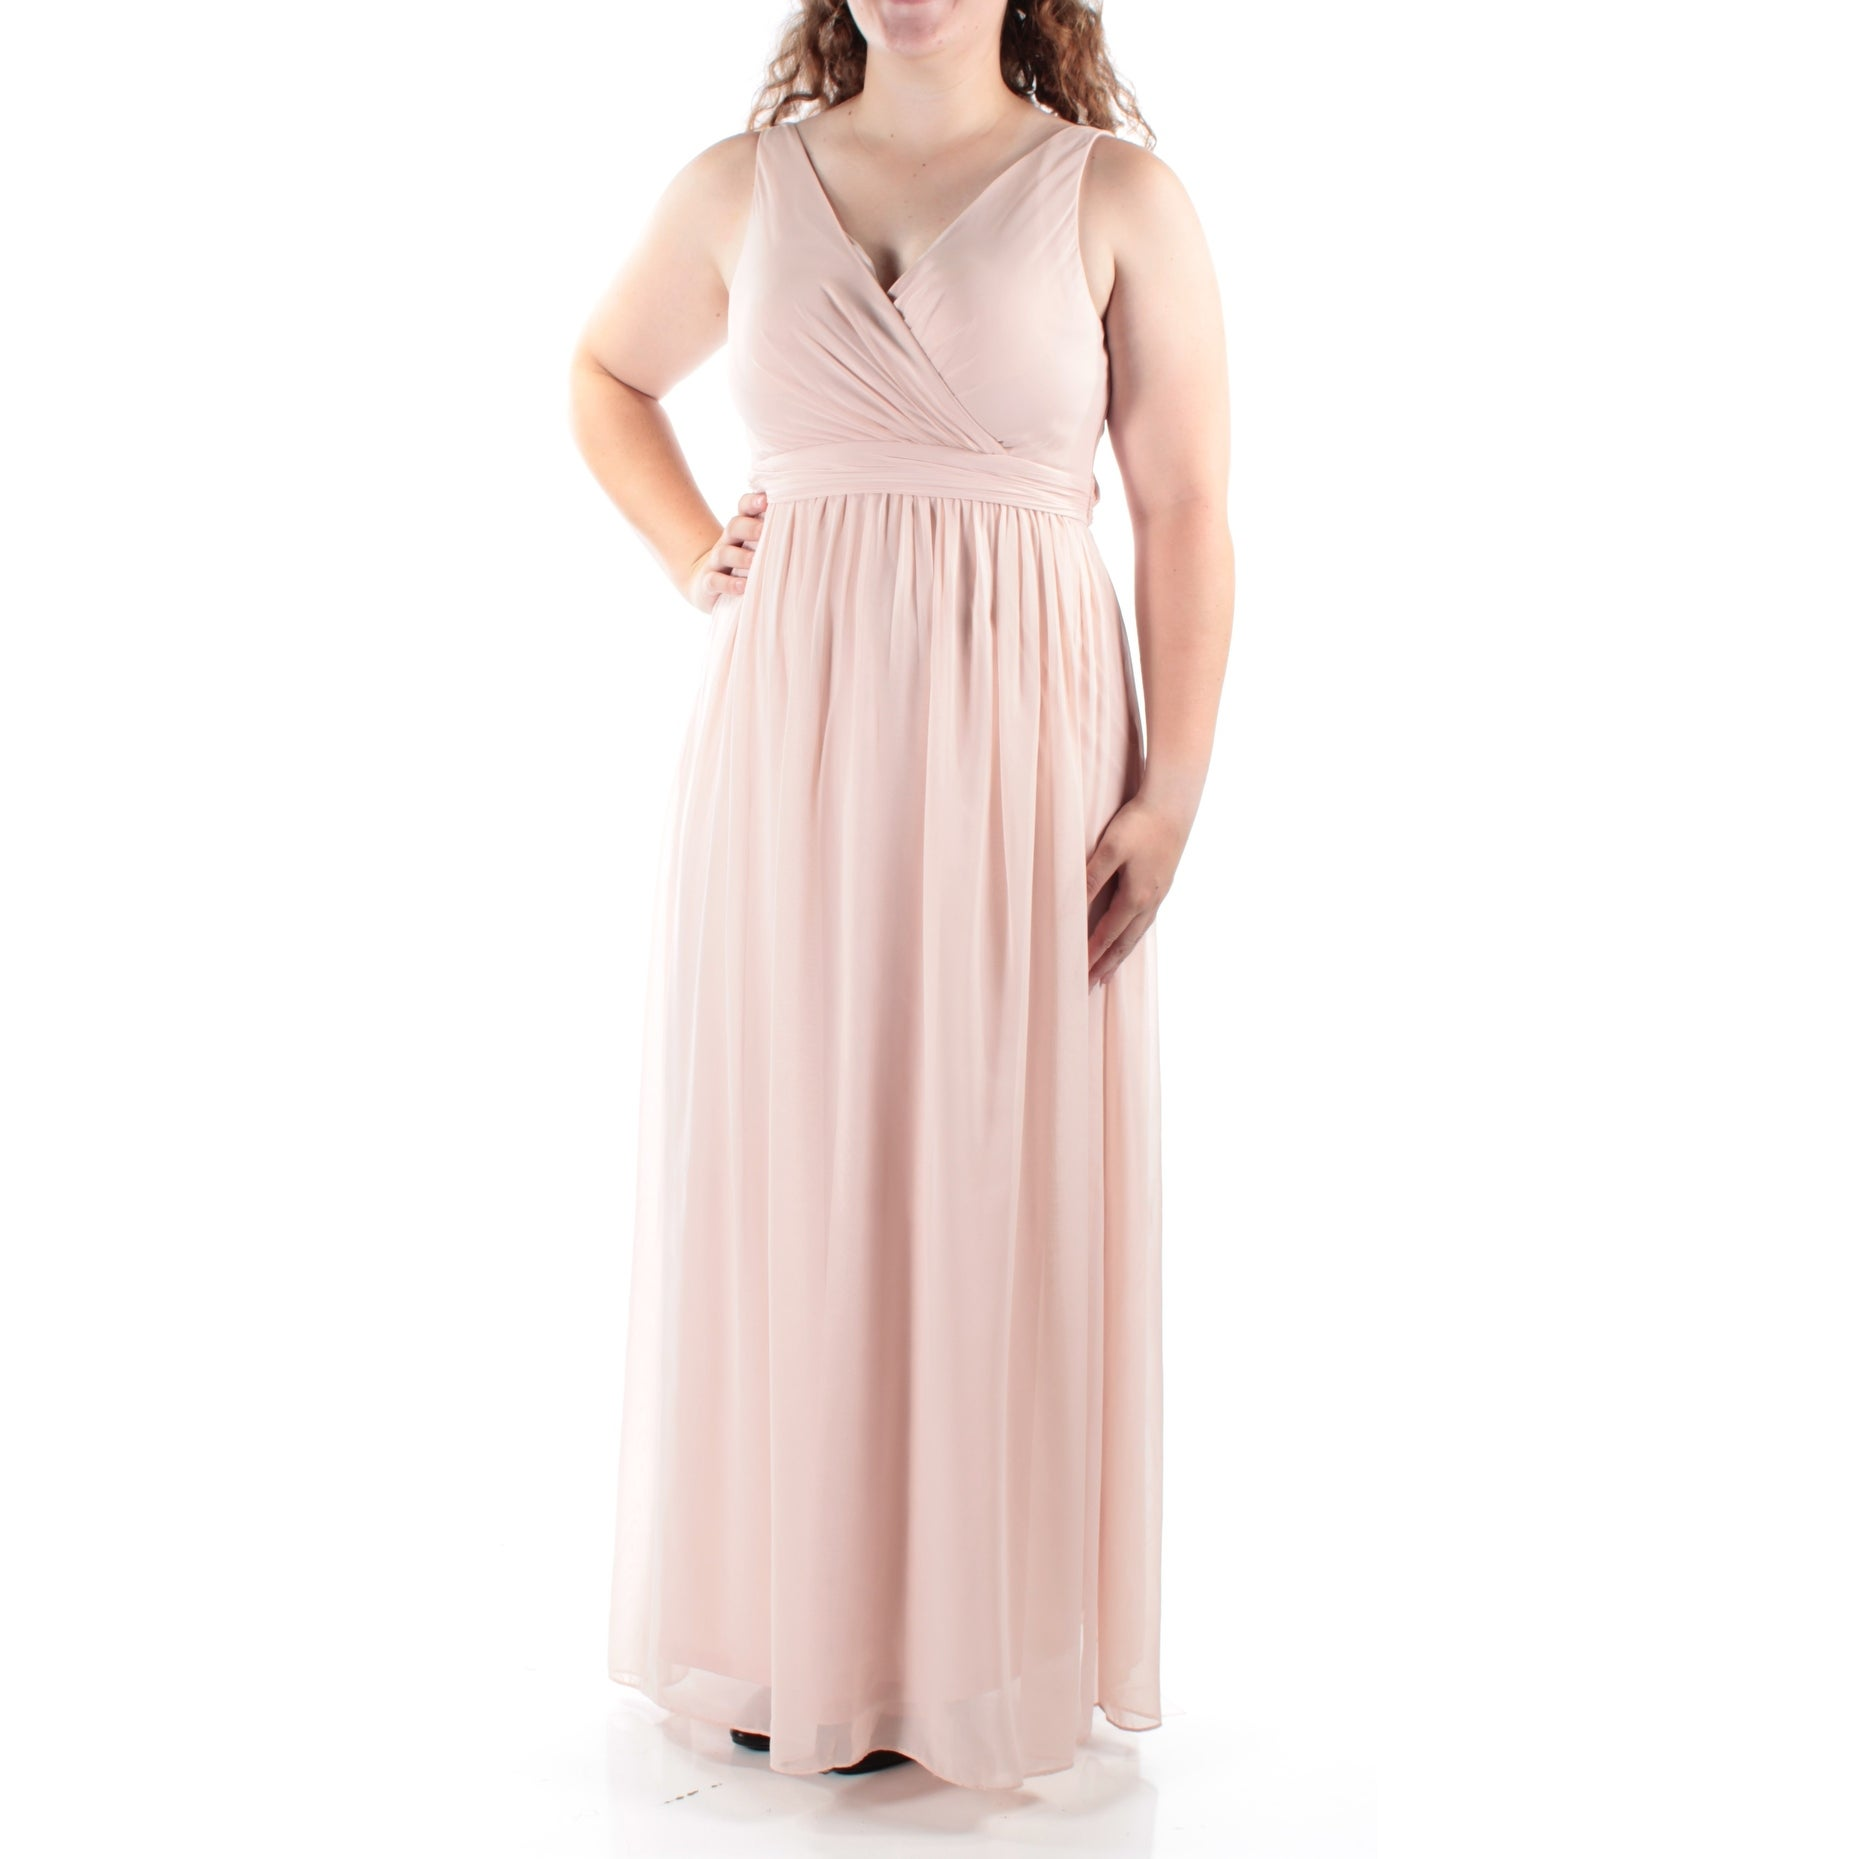 ab14e2aed812 Shop ADRIANNA PAPELL Womens Pink Spaghetti Strap V Neck Full Length Empire  Waist Dress Size: 14 - Free Shipping On Orders Over $45 - Overstock -  24057596